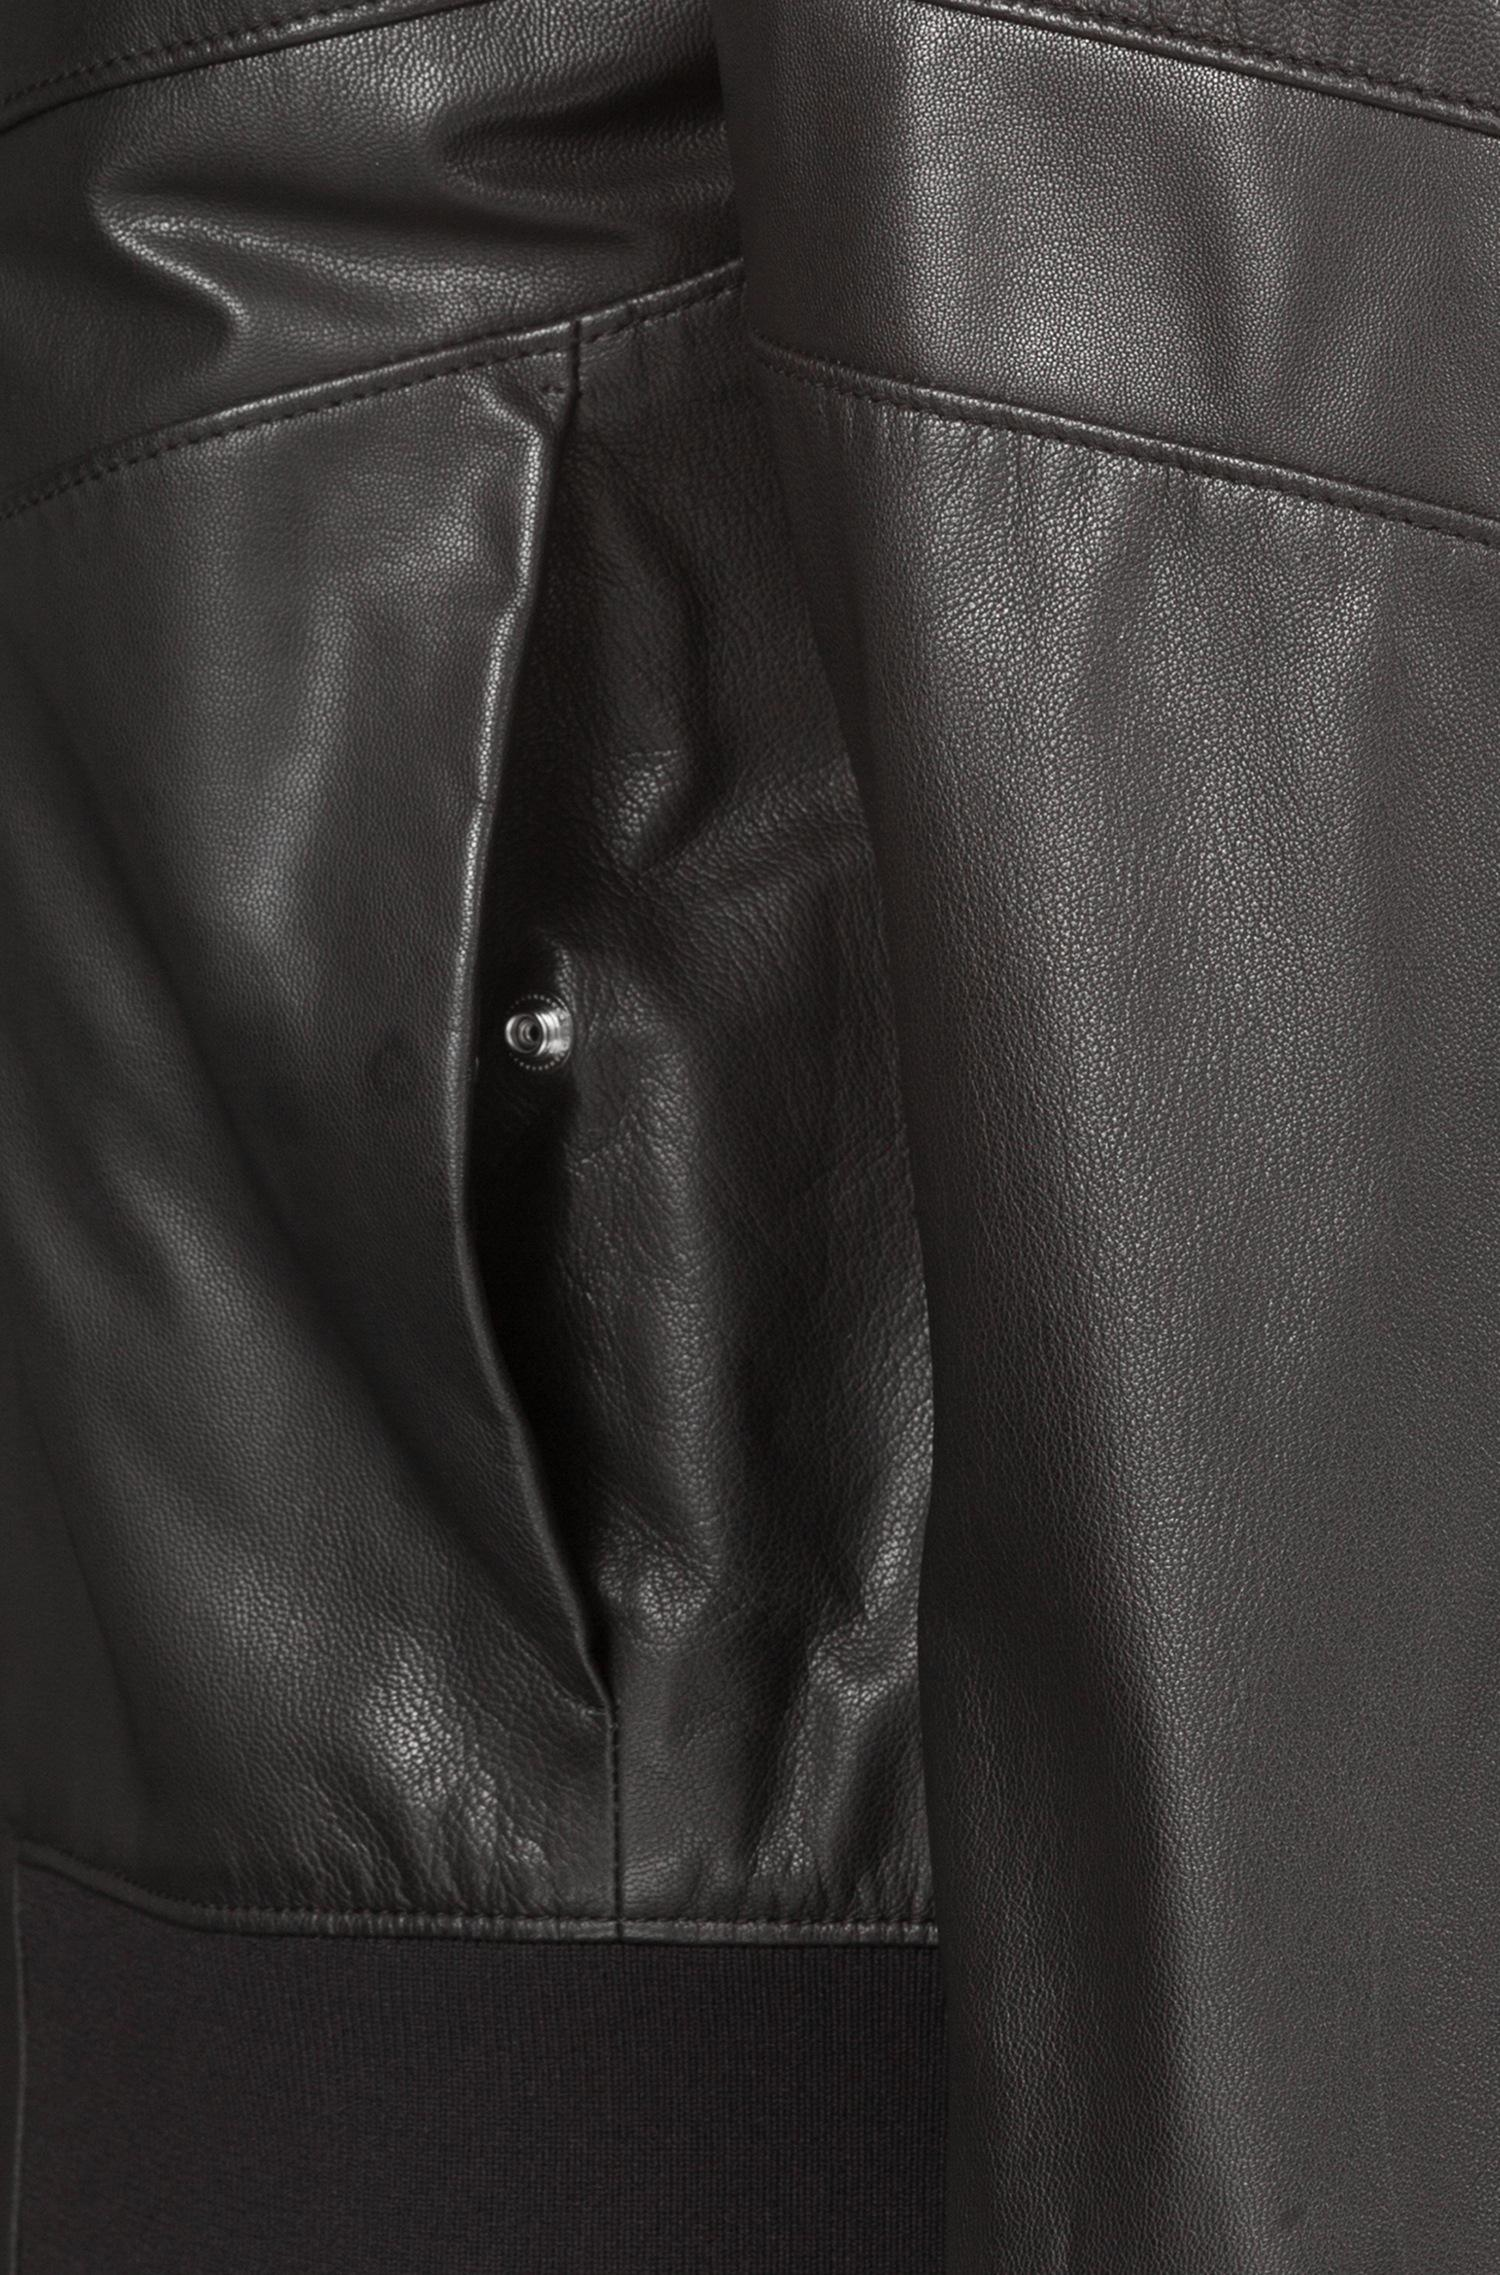 3514a1c5f86a HUGO - Black Regular-fit Bomber Jacket In Nappa Leather for Men - Lyst.  View fullscreen